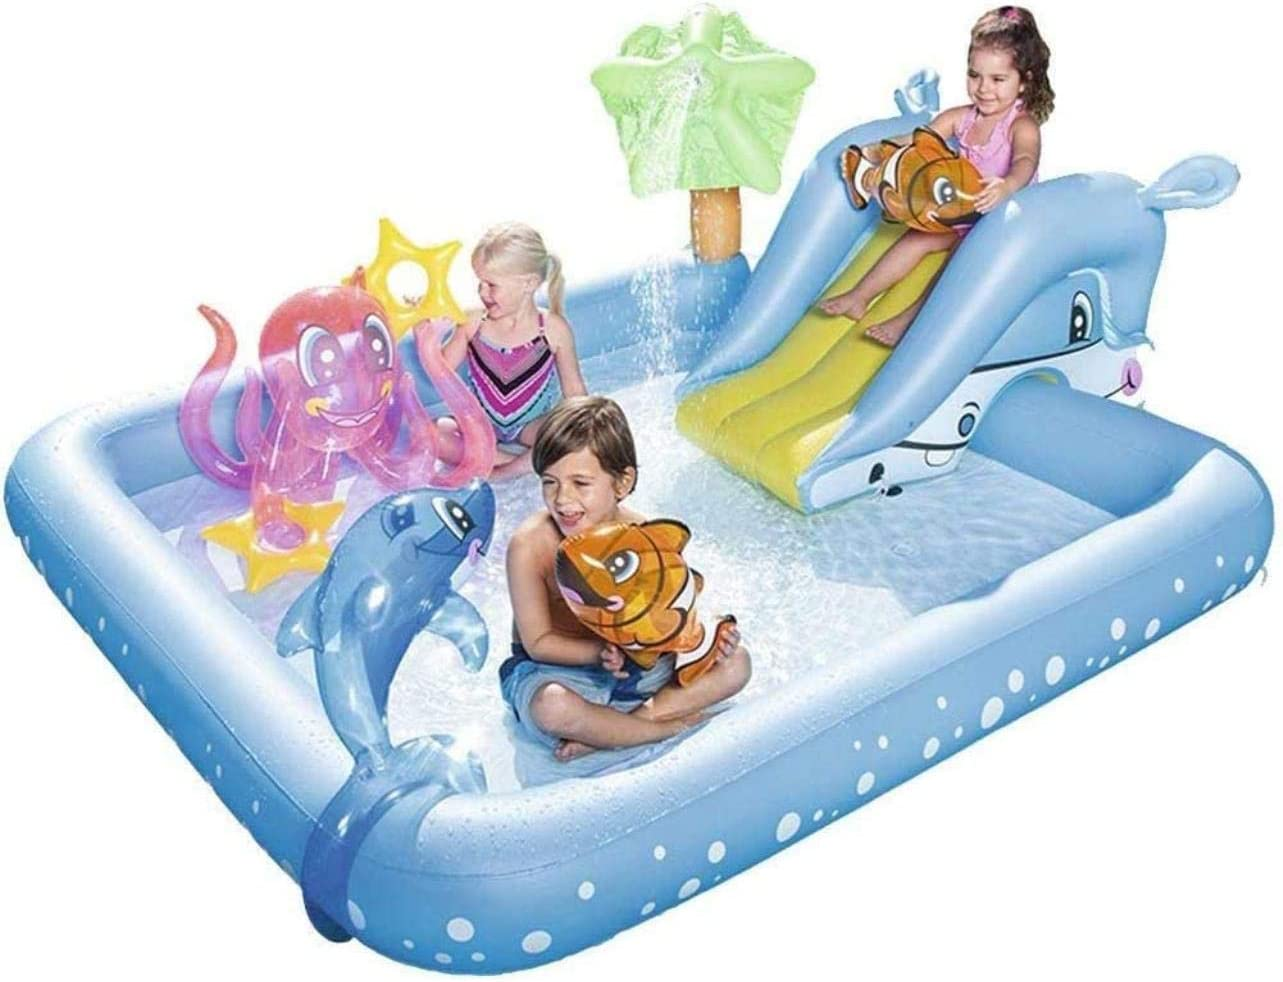 Max 79% OFF Kiddie Pools Inflatable Swimming w Play Center Beauty products